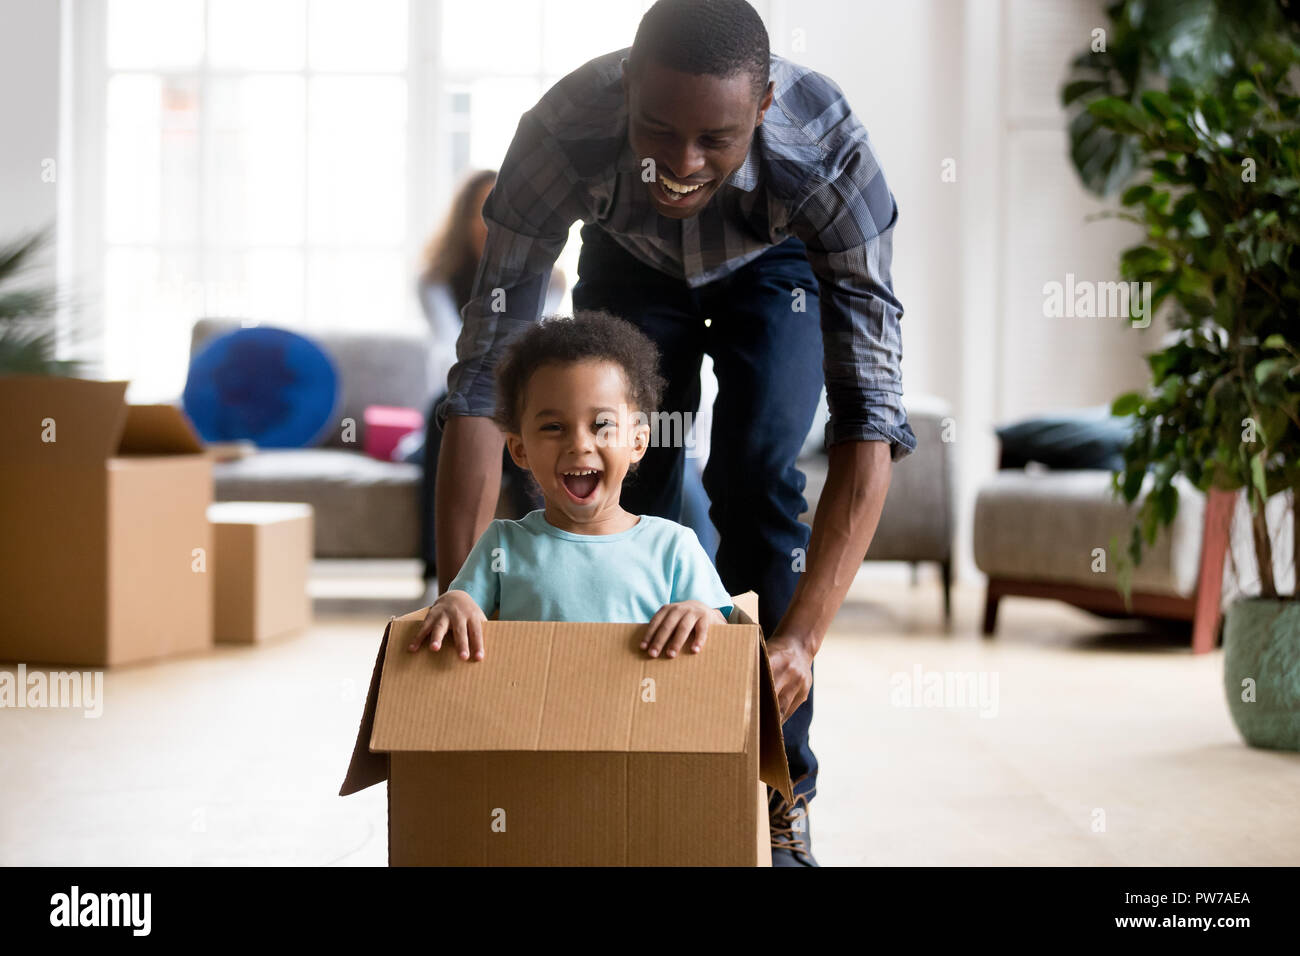 Black father and son playing with box at home - Stock Image